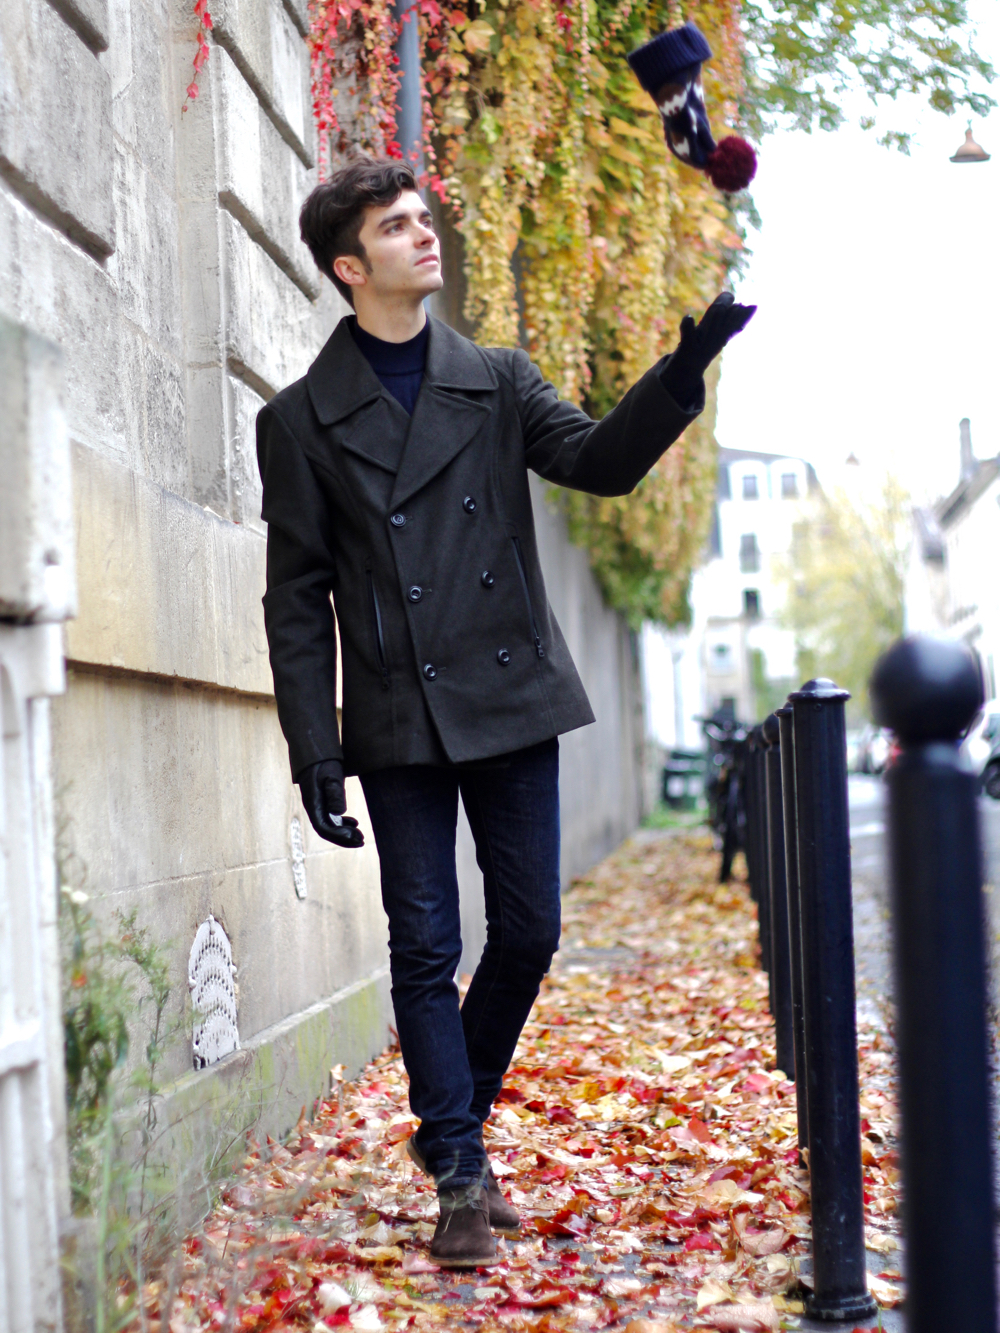 BLOG-MODE-HOMME-marks-spencer-shopping-links-col-roulé-tenue-hiver-bonnet-pompon-caban-vert-chukka-boots